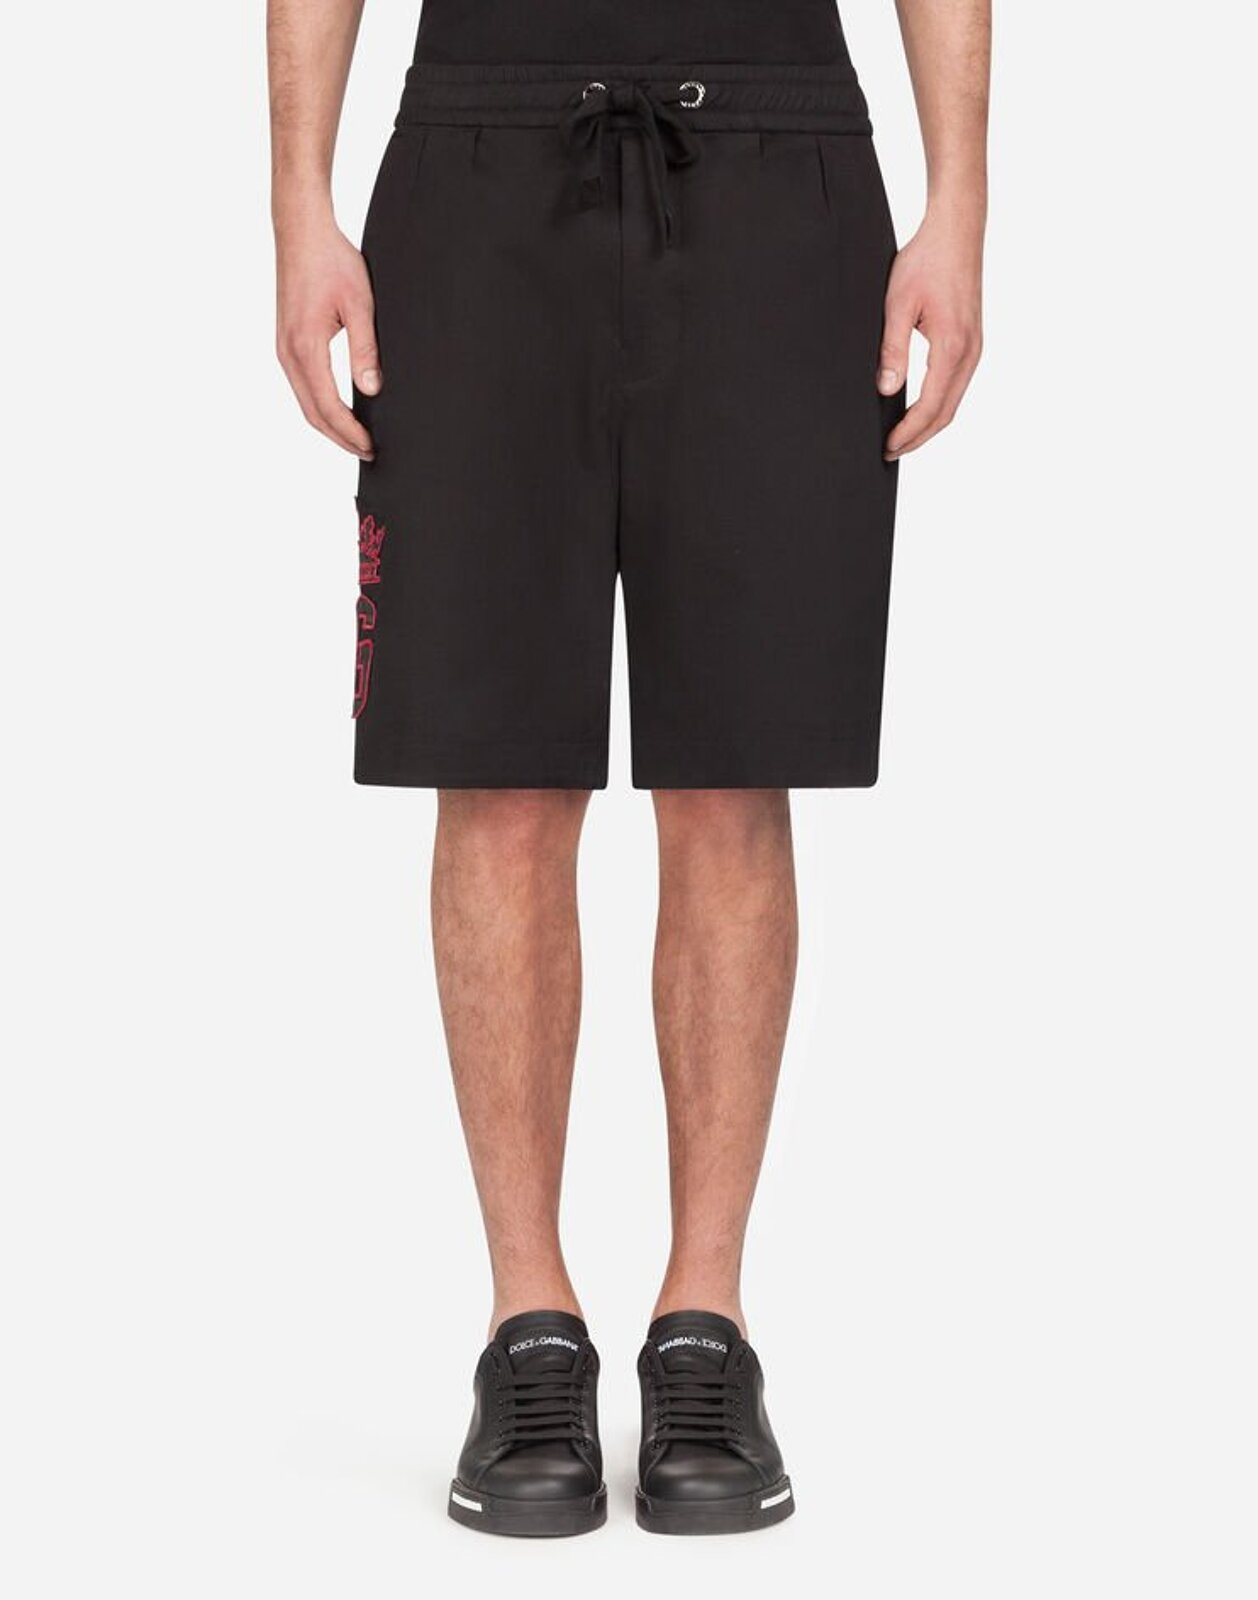 Stretch Cotton Jogging Bermuda Shorts With Dg Patch - Dolce & Gabbana